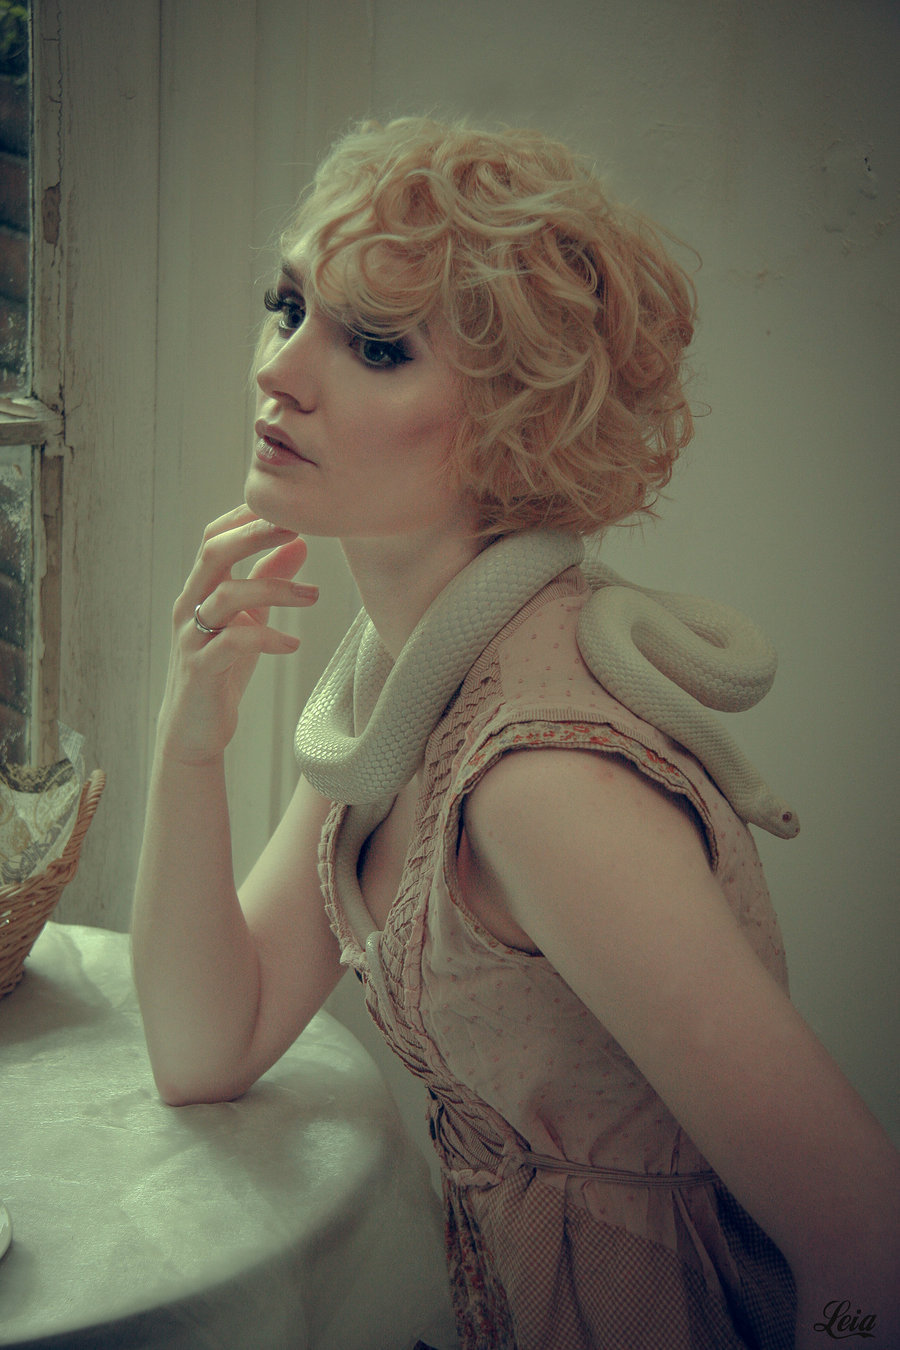 Makeup by Leia Bishop, Stylist Ellie's Reptiles, Hair styling by Ellie's Reptiles / Uploaded 5th May 2015 @ 12:04 PM